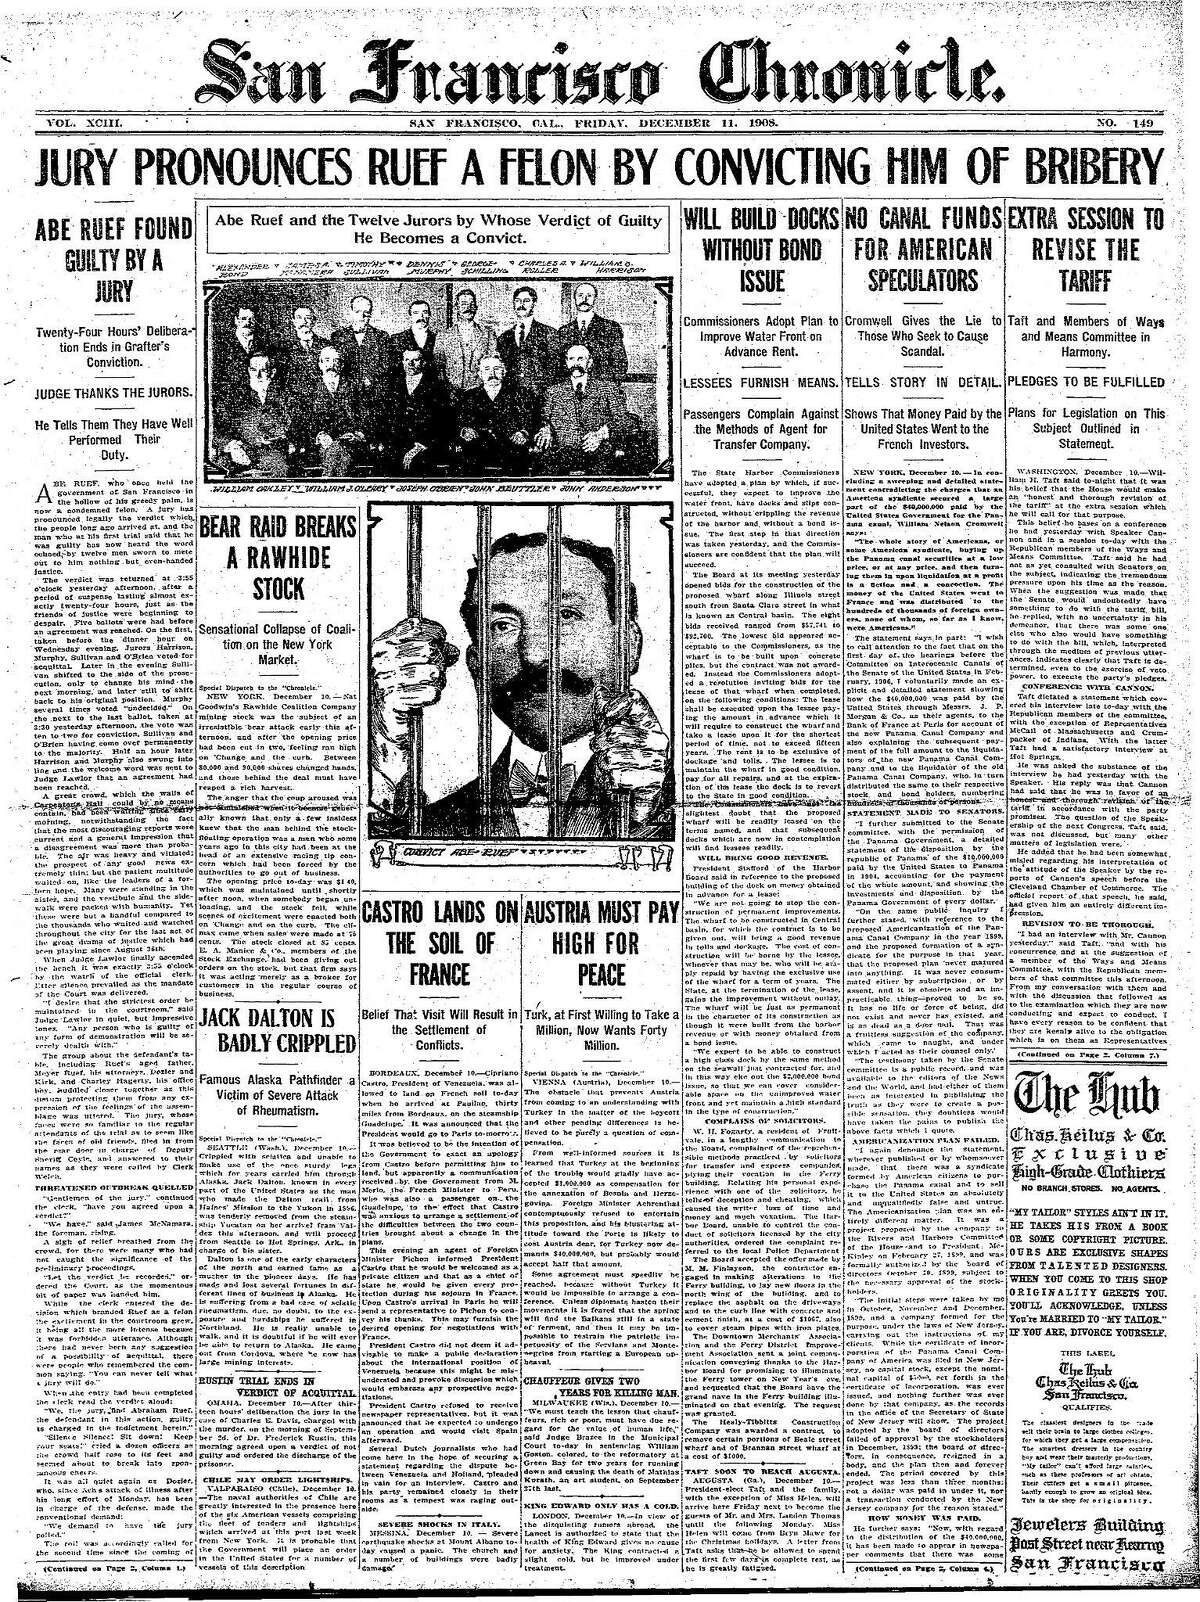 Historic Chronicle Front Page December 11, 1908 San Francisco power broker Abe Ruef convicted of bribery Chron365, Chroncover